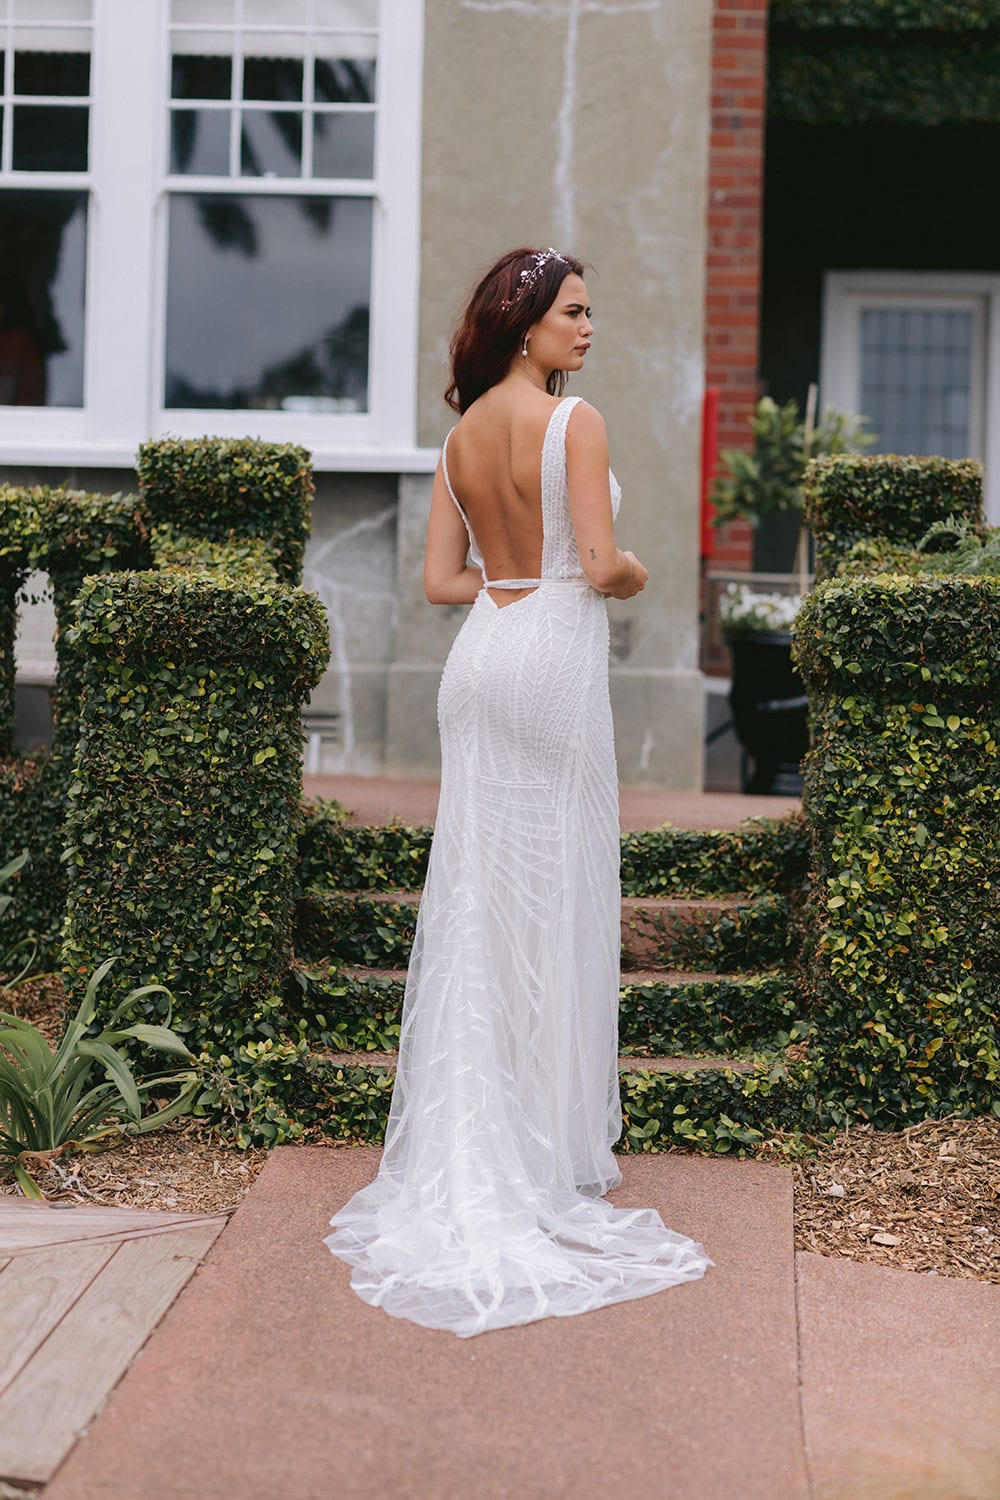 Elle Wedding gown from Vinka Design - Wedding dress with illusion neckline and deep plunge in the front with low back. Stunning beaded embroidery over a stretch base that sculpts and flatters the figure and falls into a beautiful flared train. Model wearing gown in beautiful gardens showing lace train.